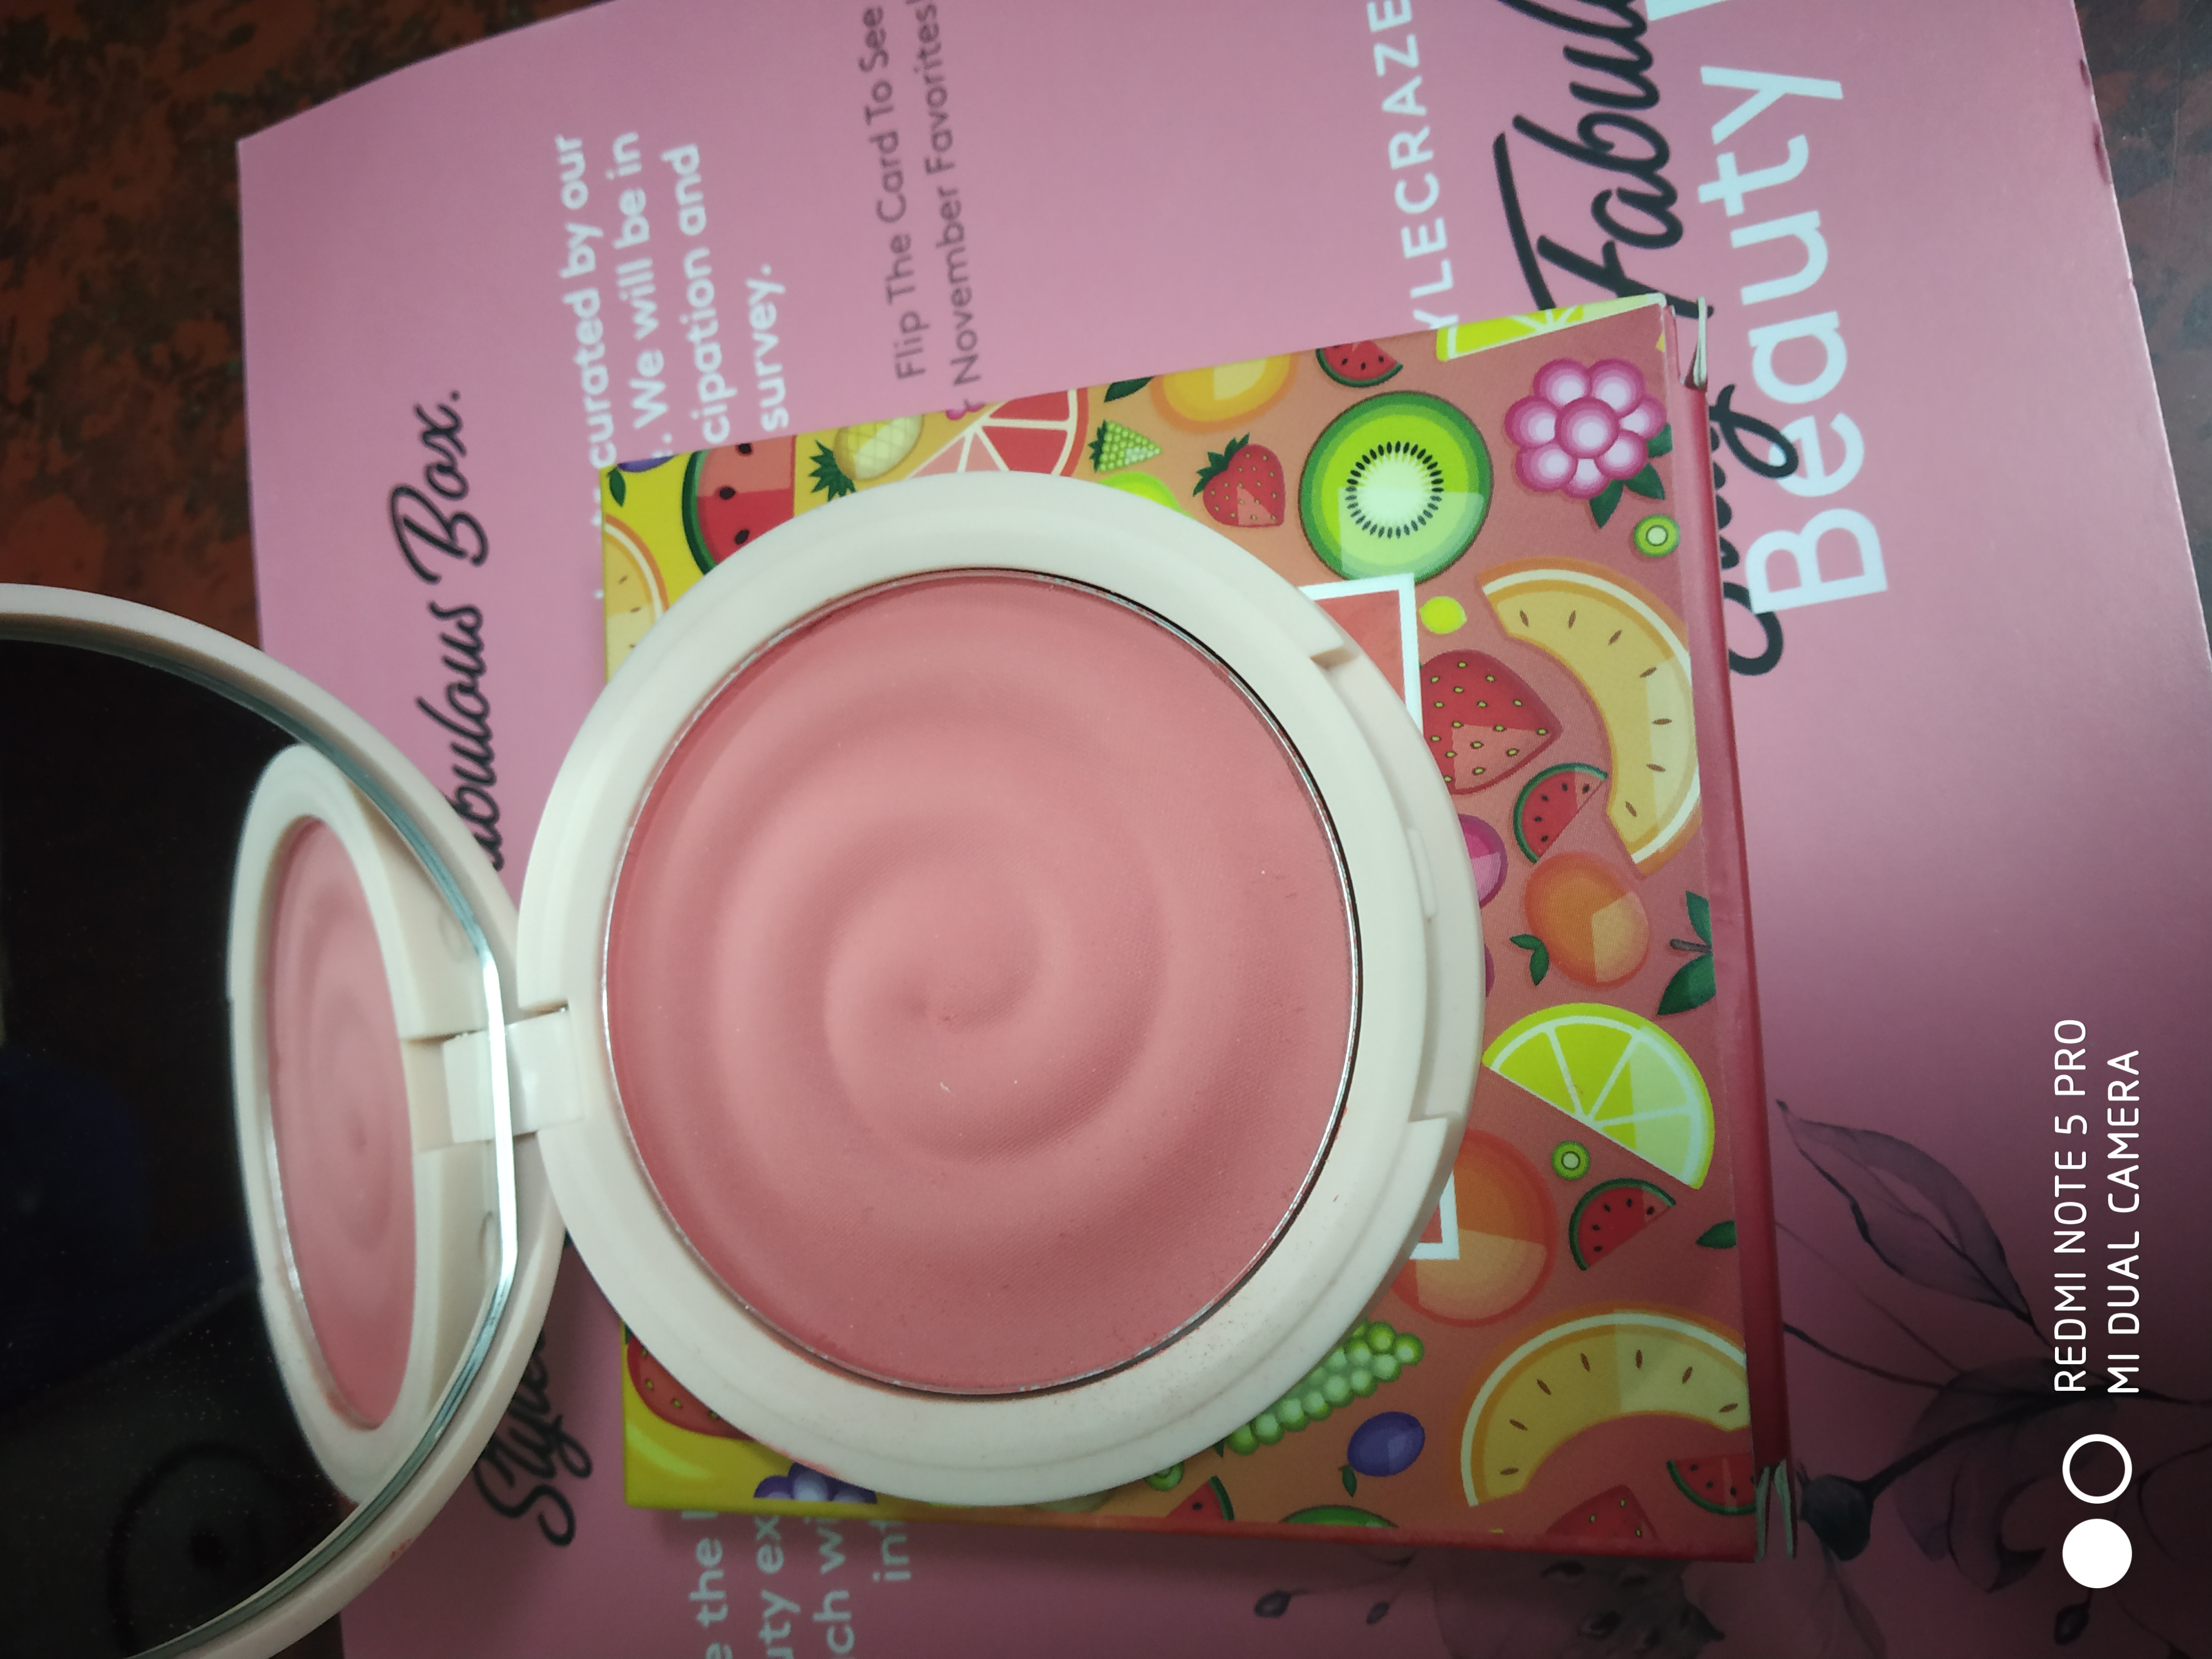 MyGlamm K.PLAY FLAVOURED BLUSH – FROZEN RASPBERRY pic 1-Best Blush To keep Blushing-By farha_mirza